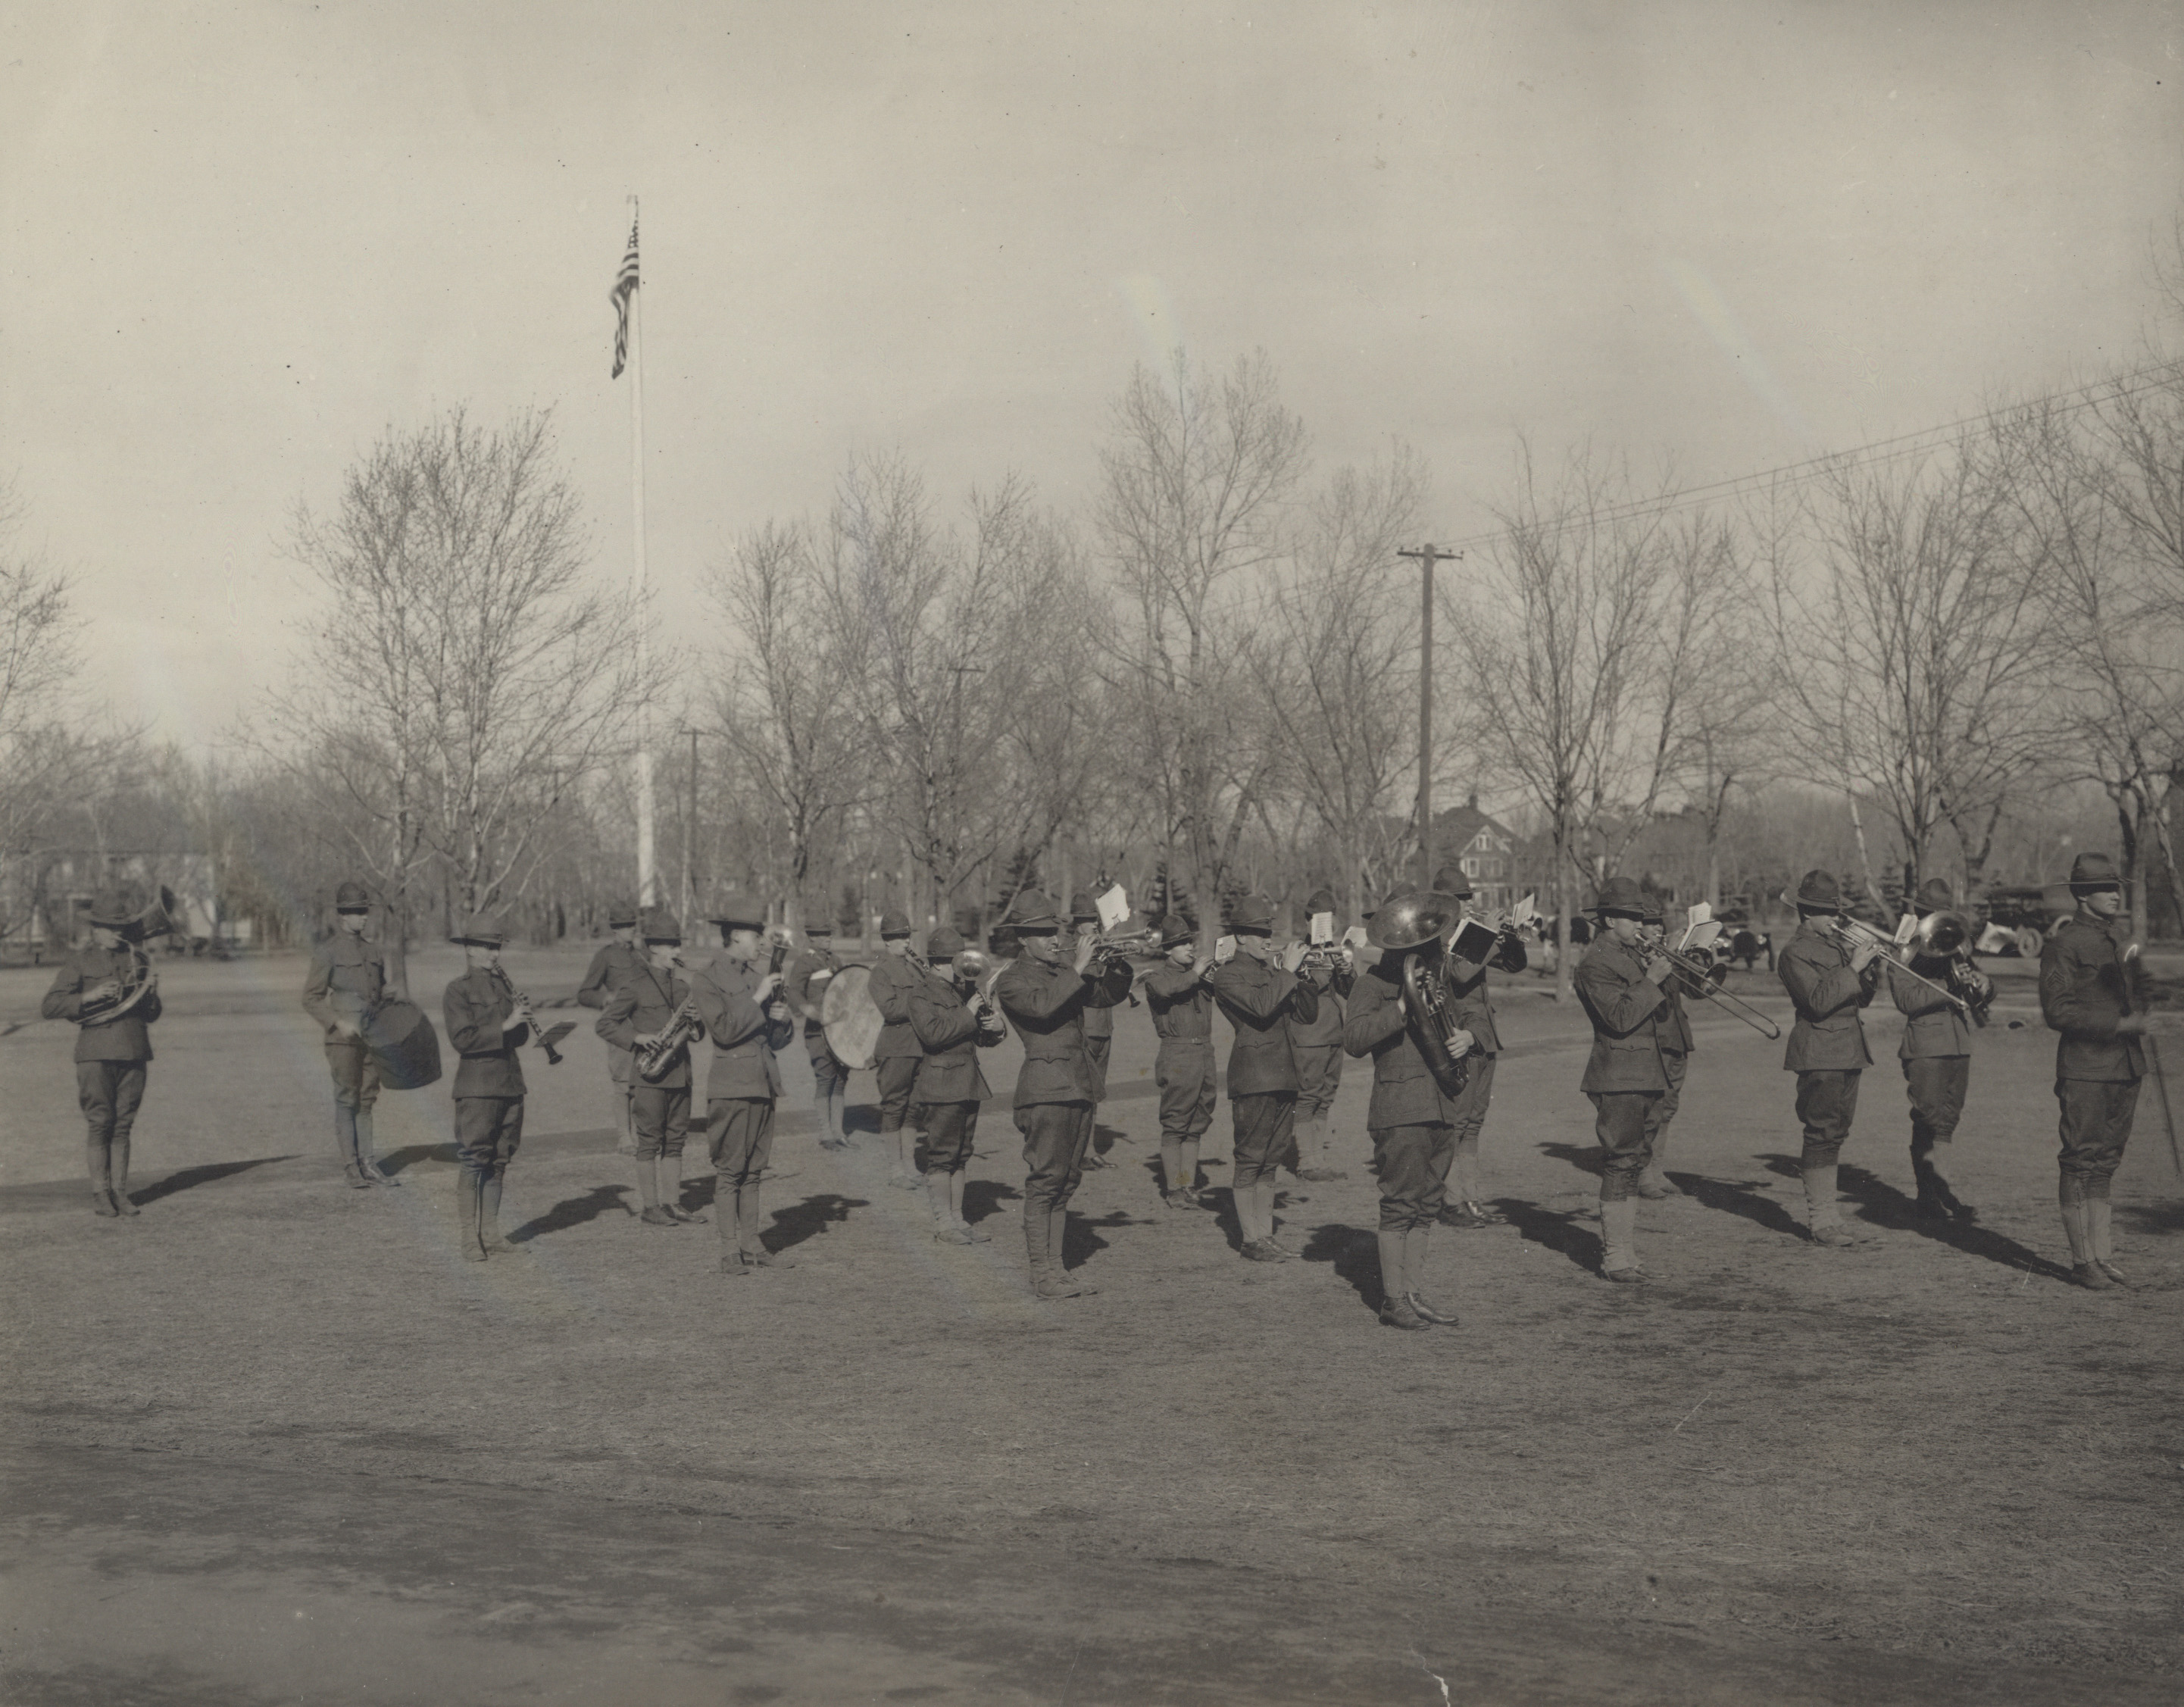 WWI army band 1